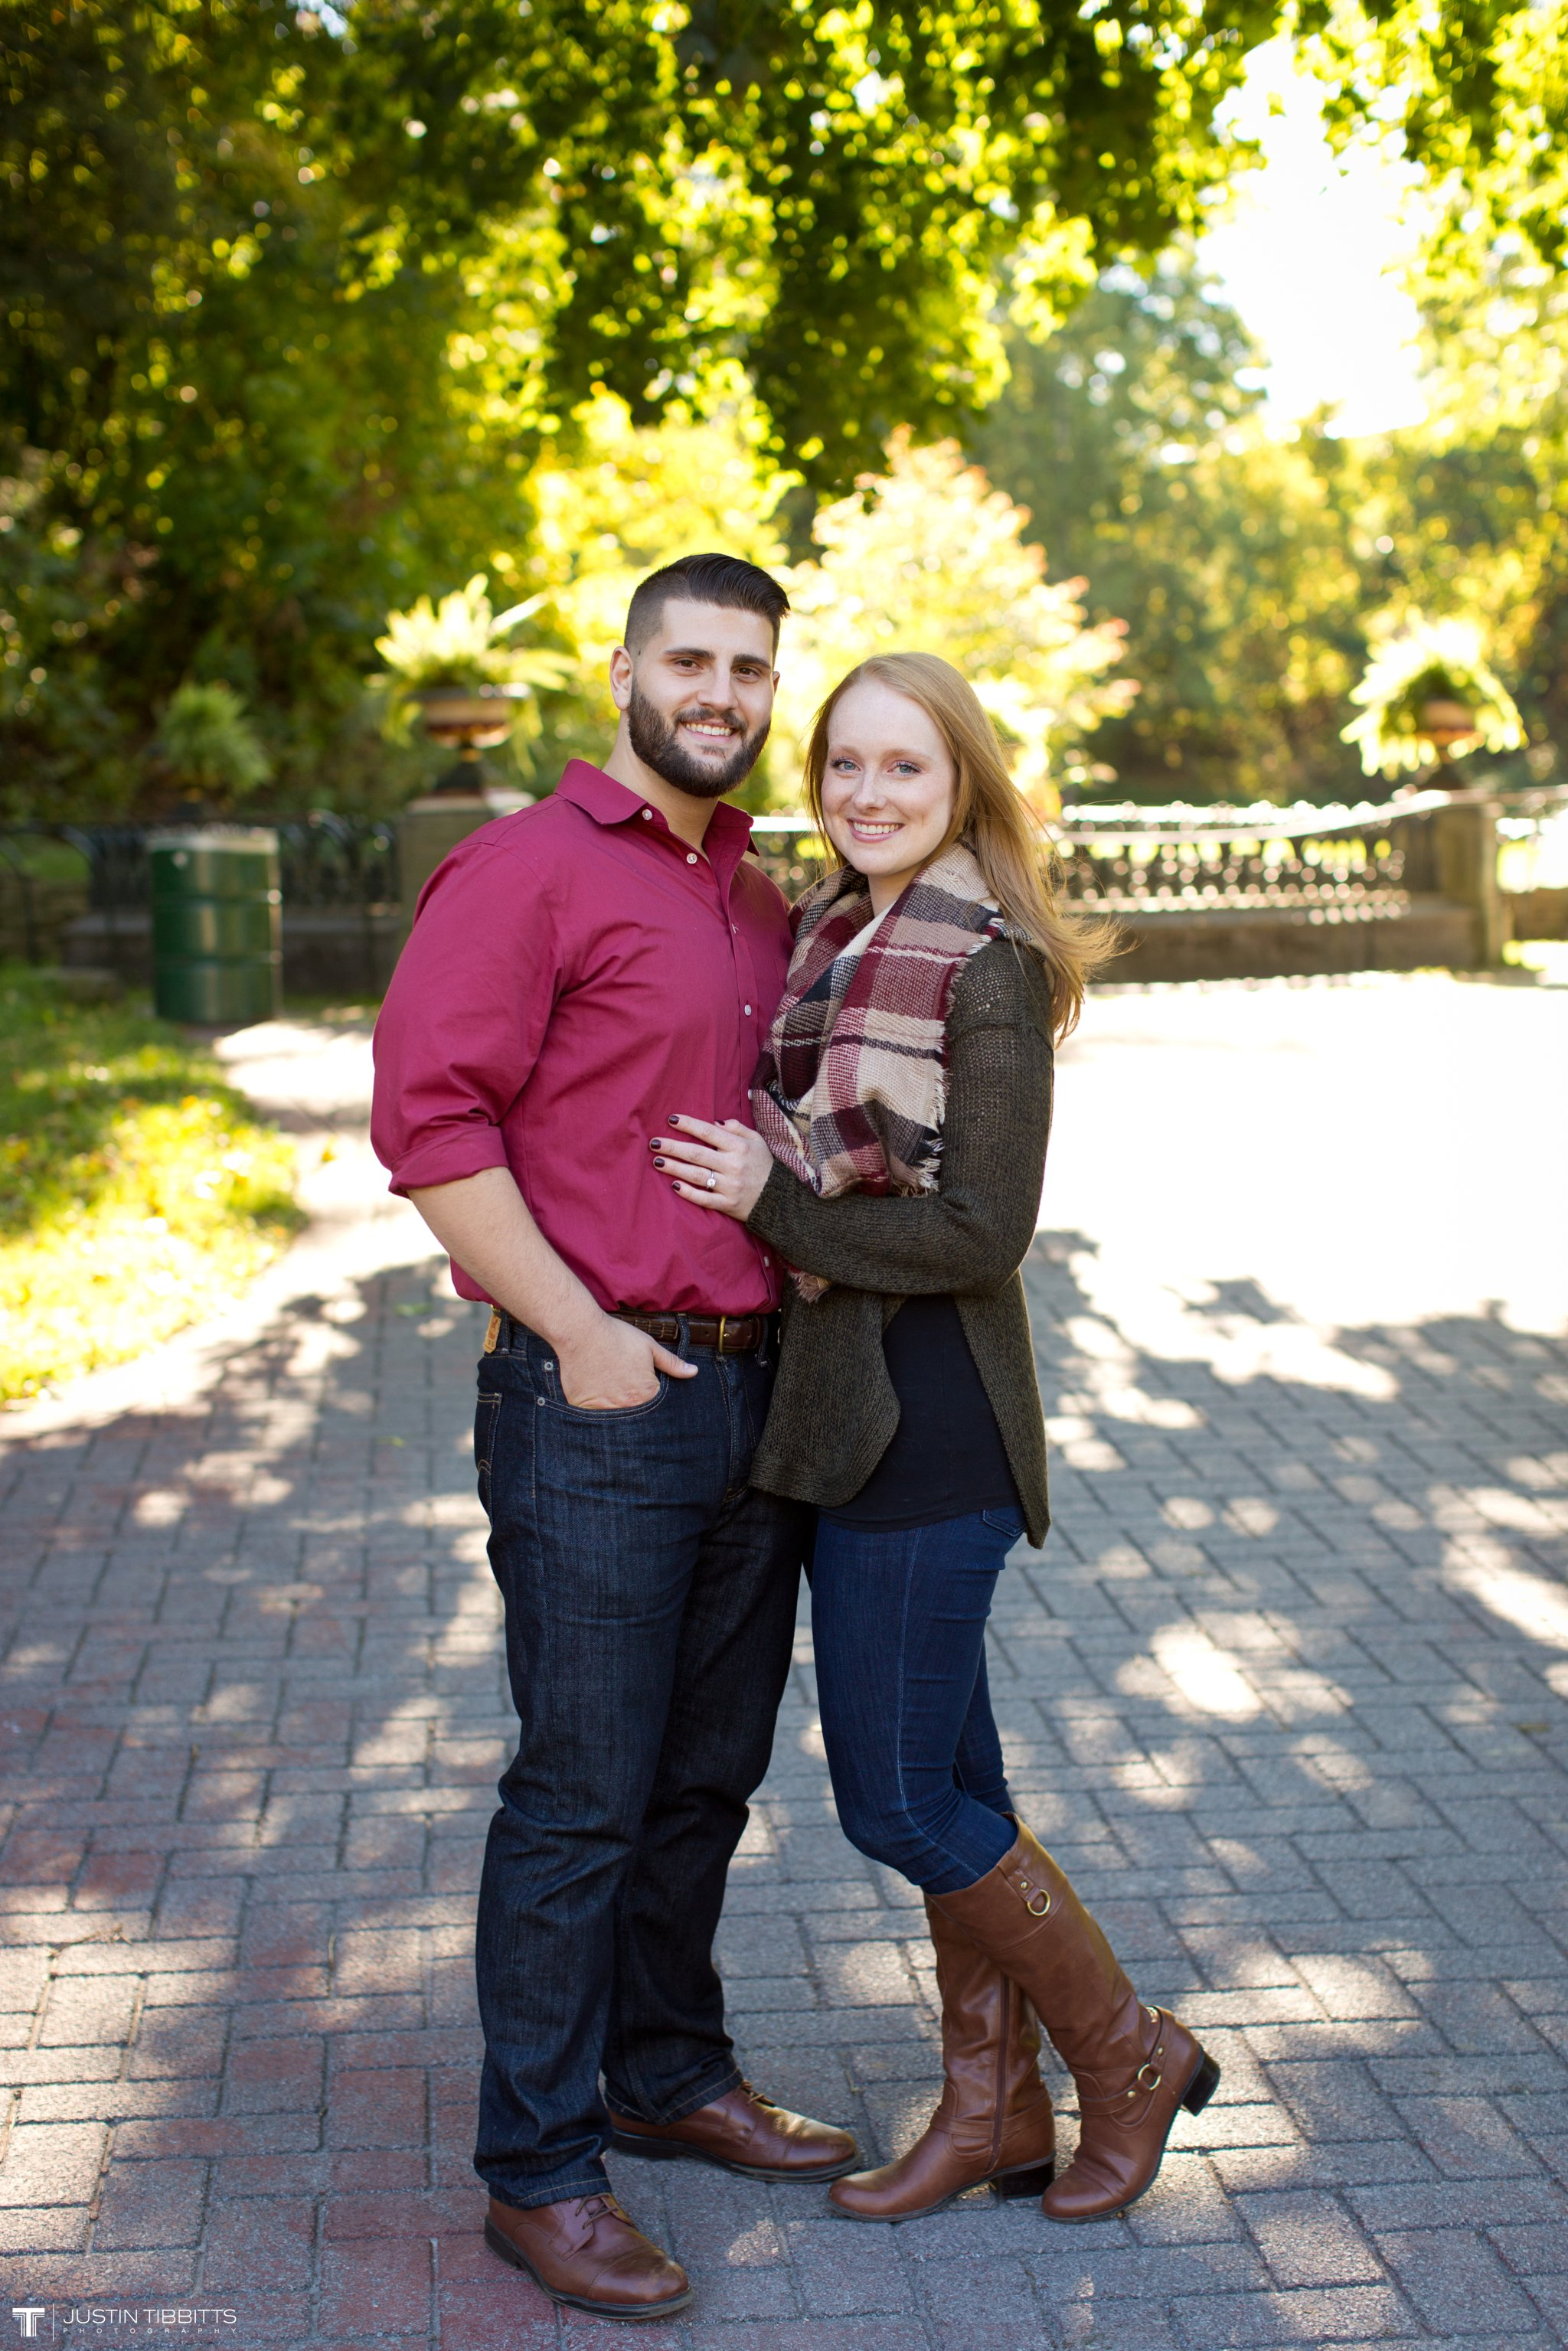 congress-park-saratoga-springs-engagement-photos-with-lauren-and-nick_0002